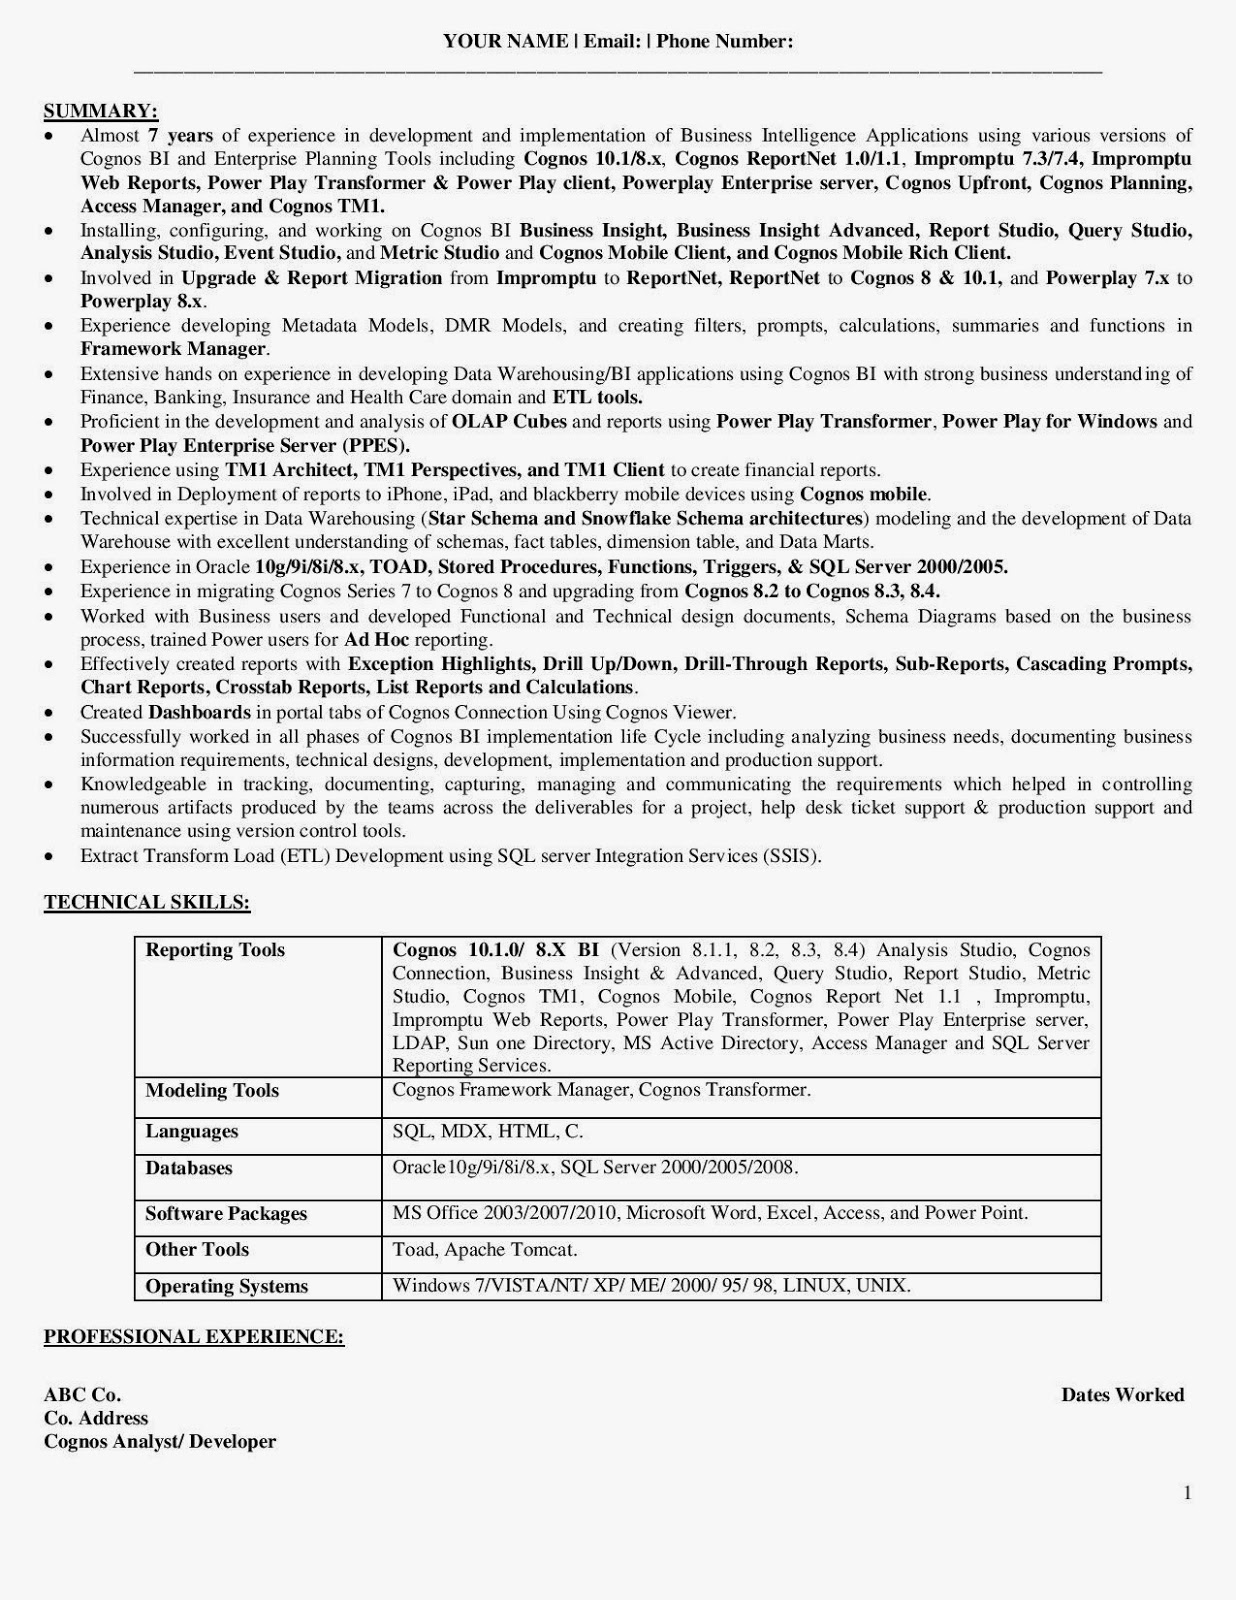 Sample Resume Head Quality Assurance Budget Analyst Cover Letter Duupi Test Analyst  Resume Combination Template Quality  Quality Assurance Analyst Resume